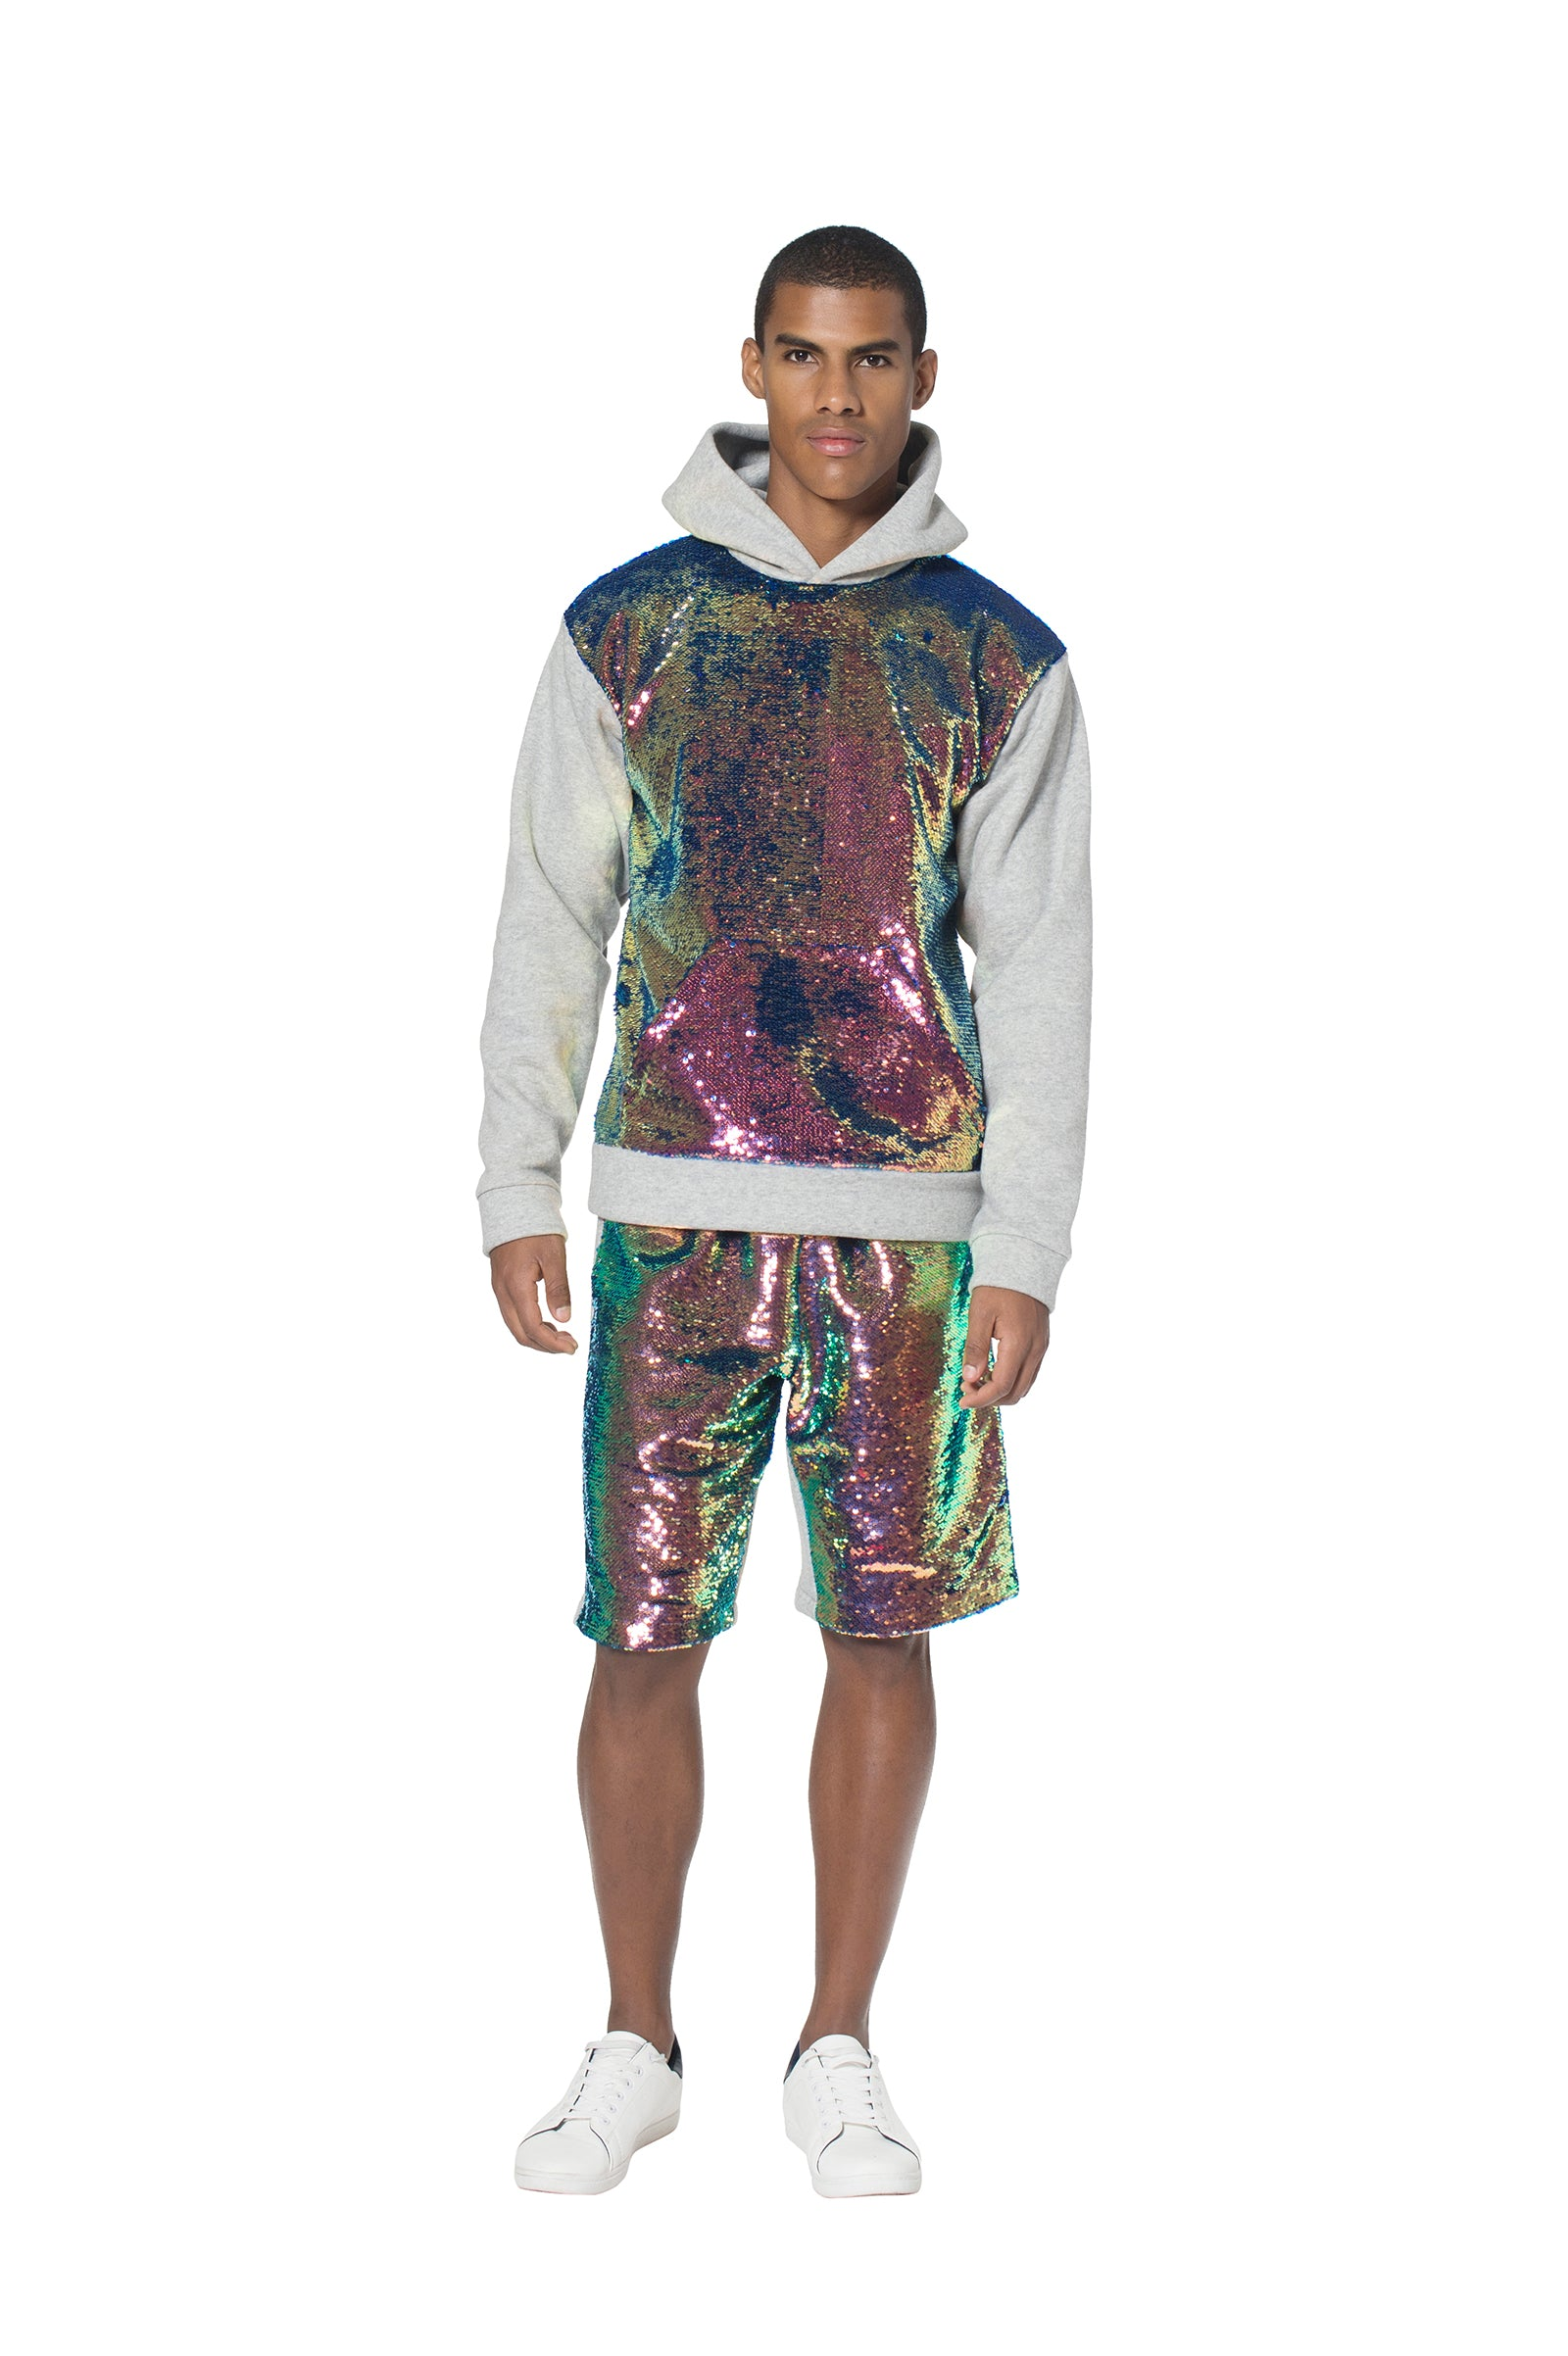 ROSSINI RHAPSODY HOODED SWEATSHIRT